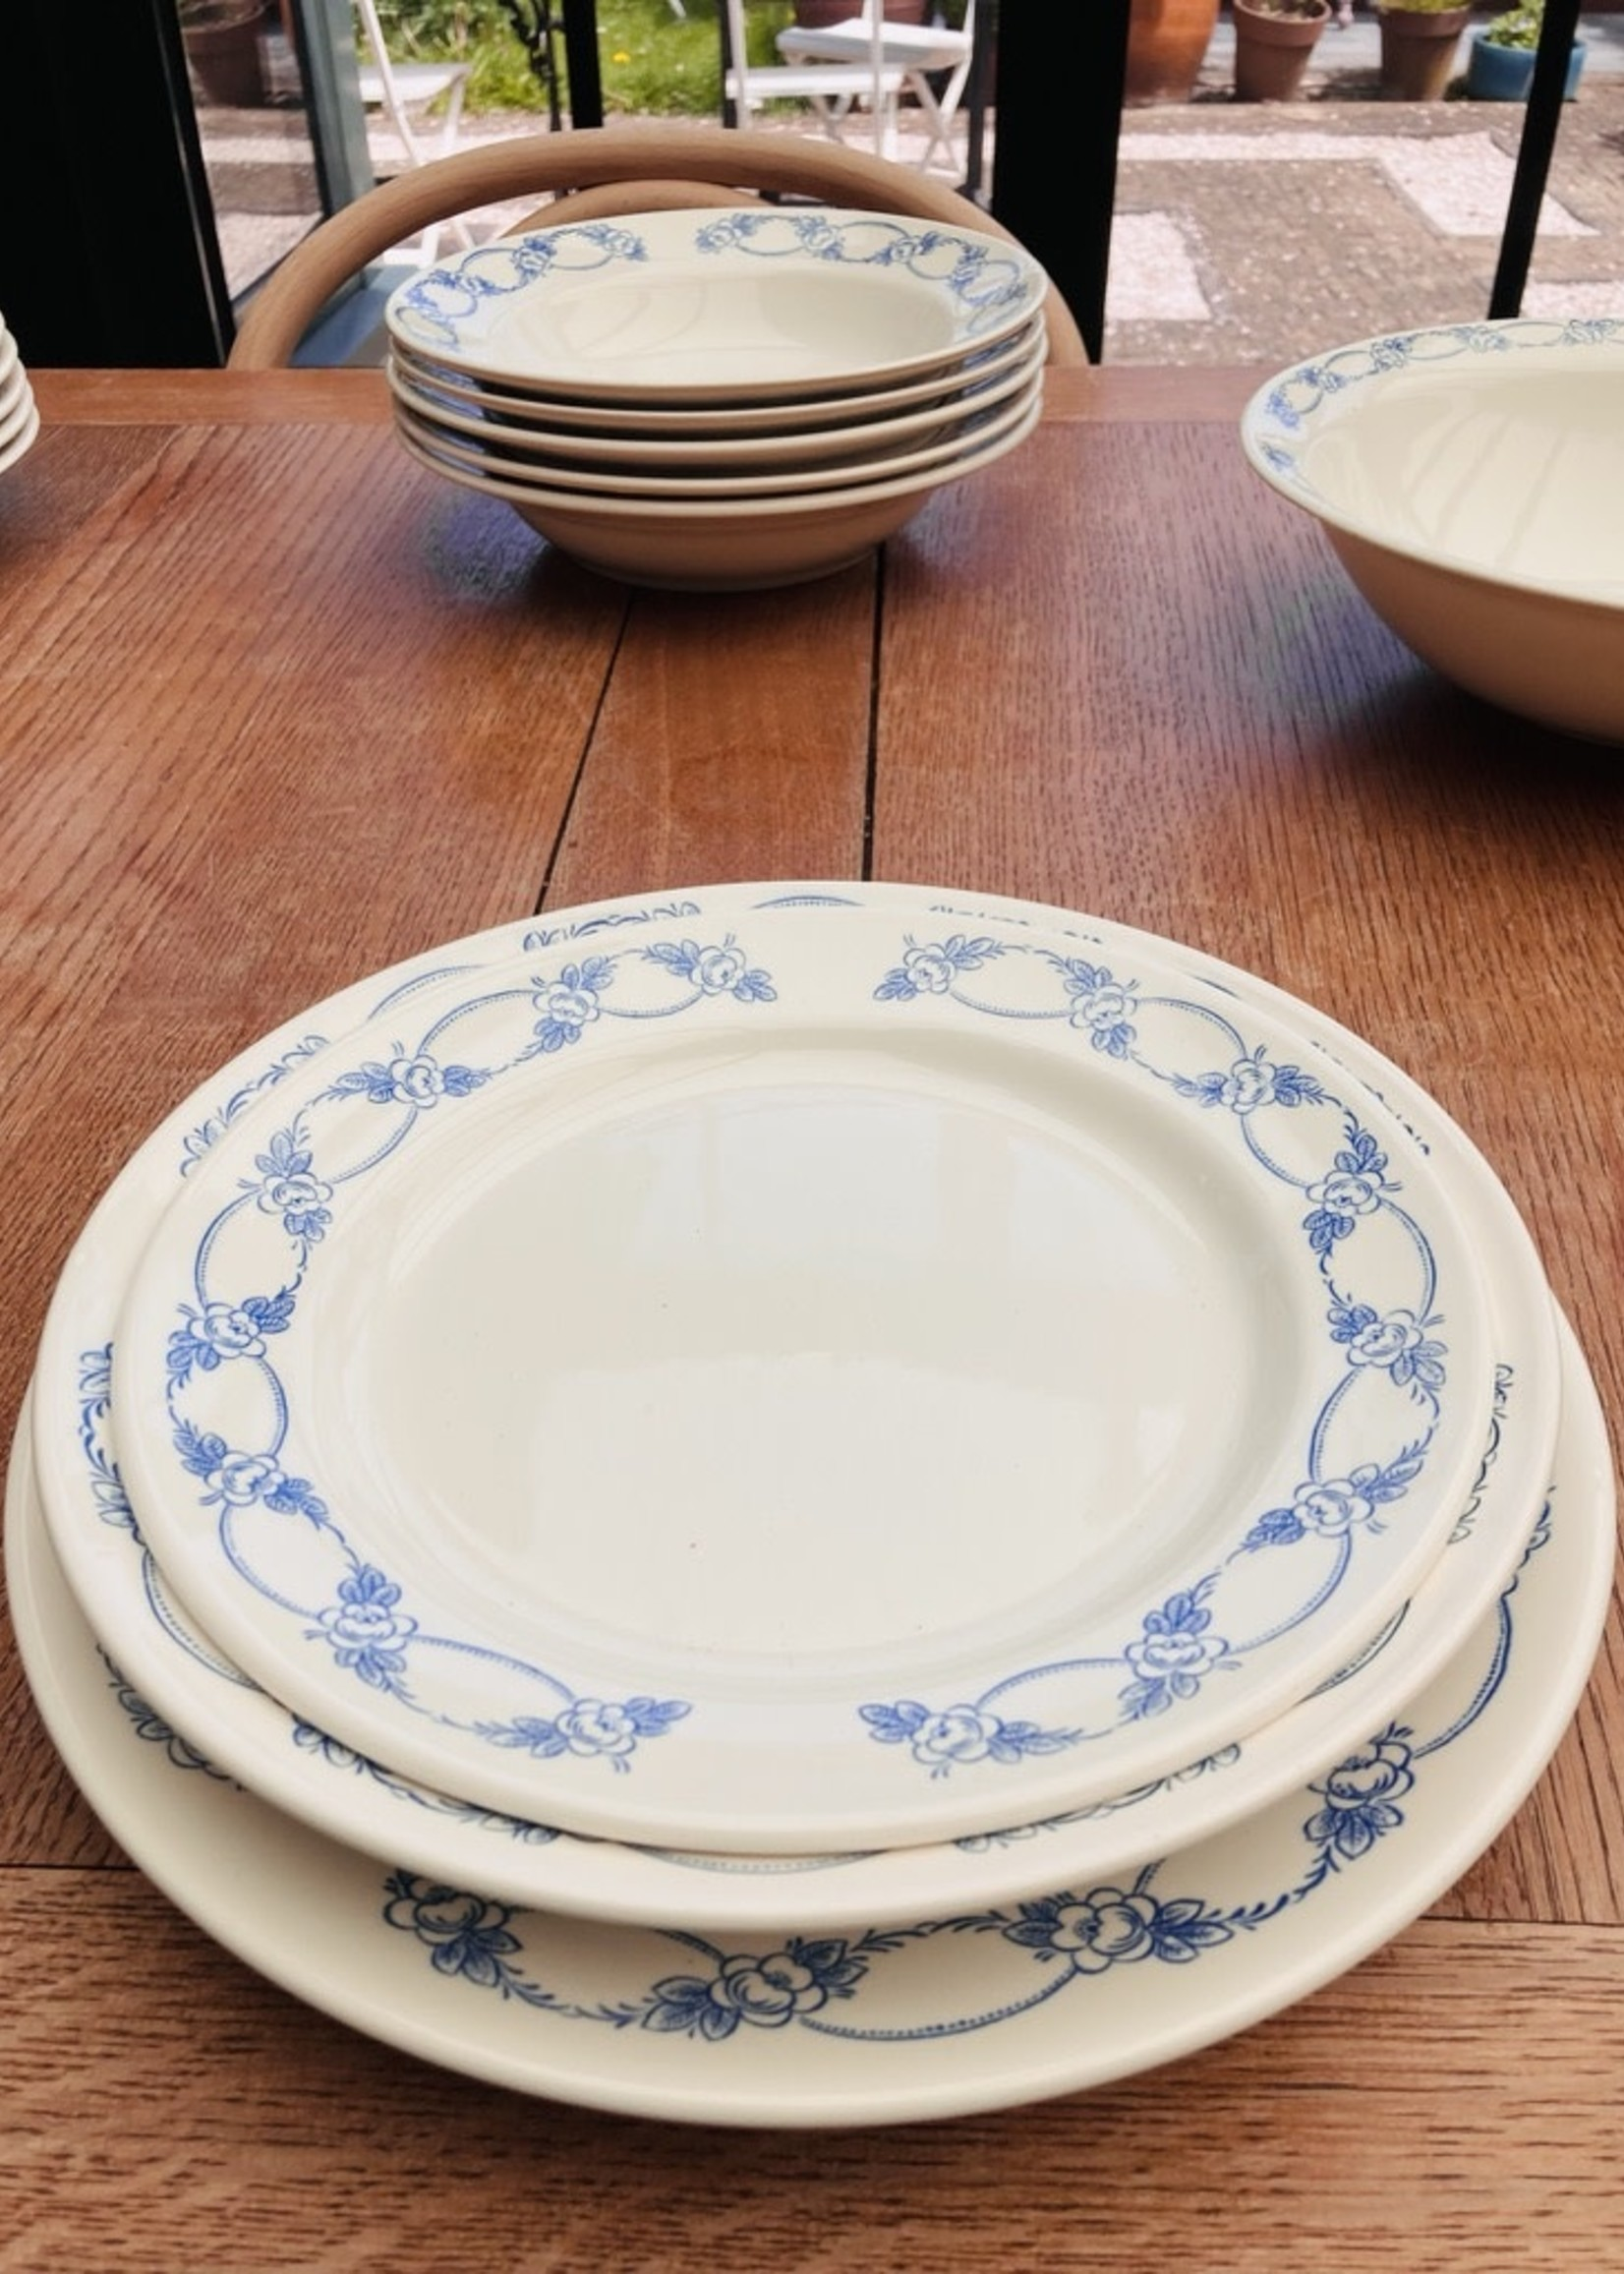 Small plates With blue flowers on border - No brand